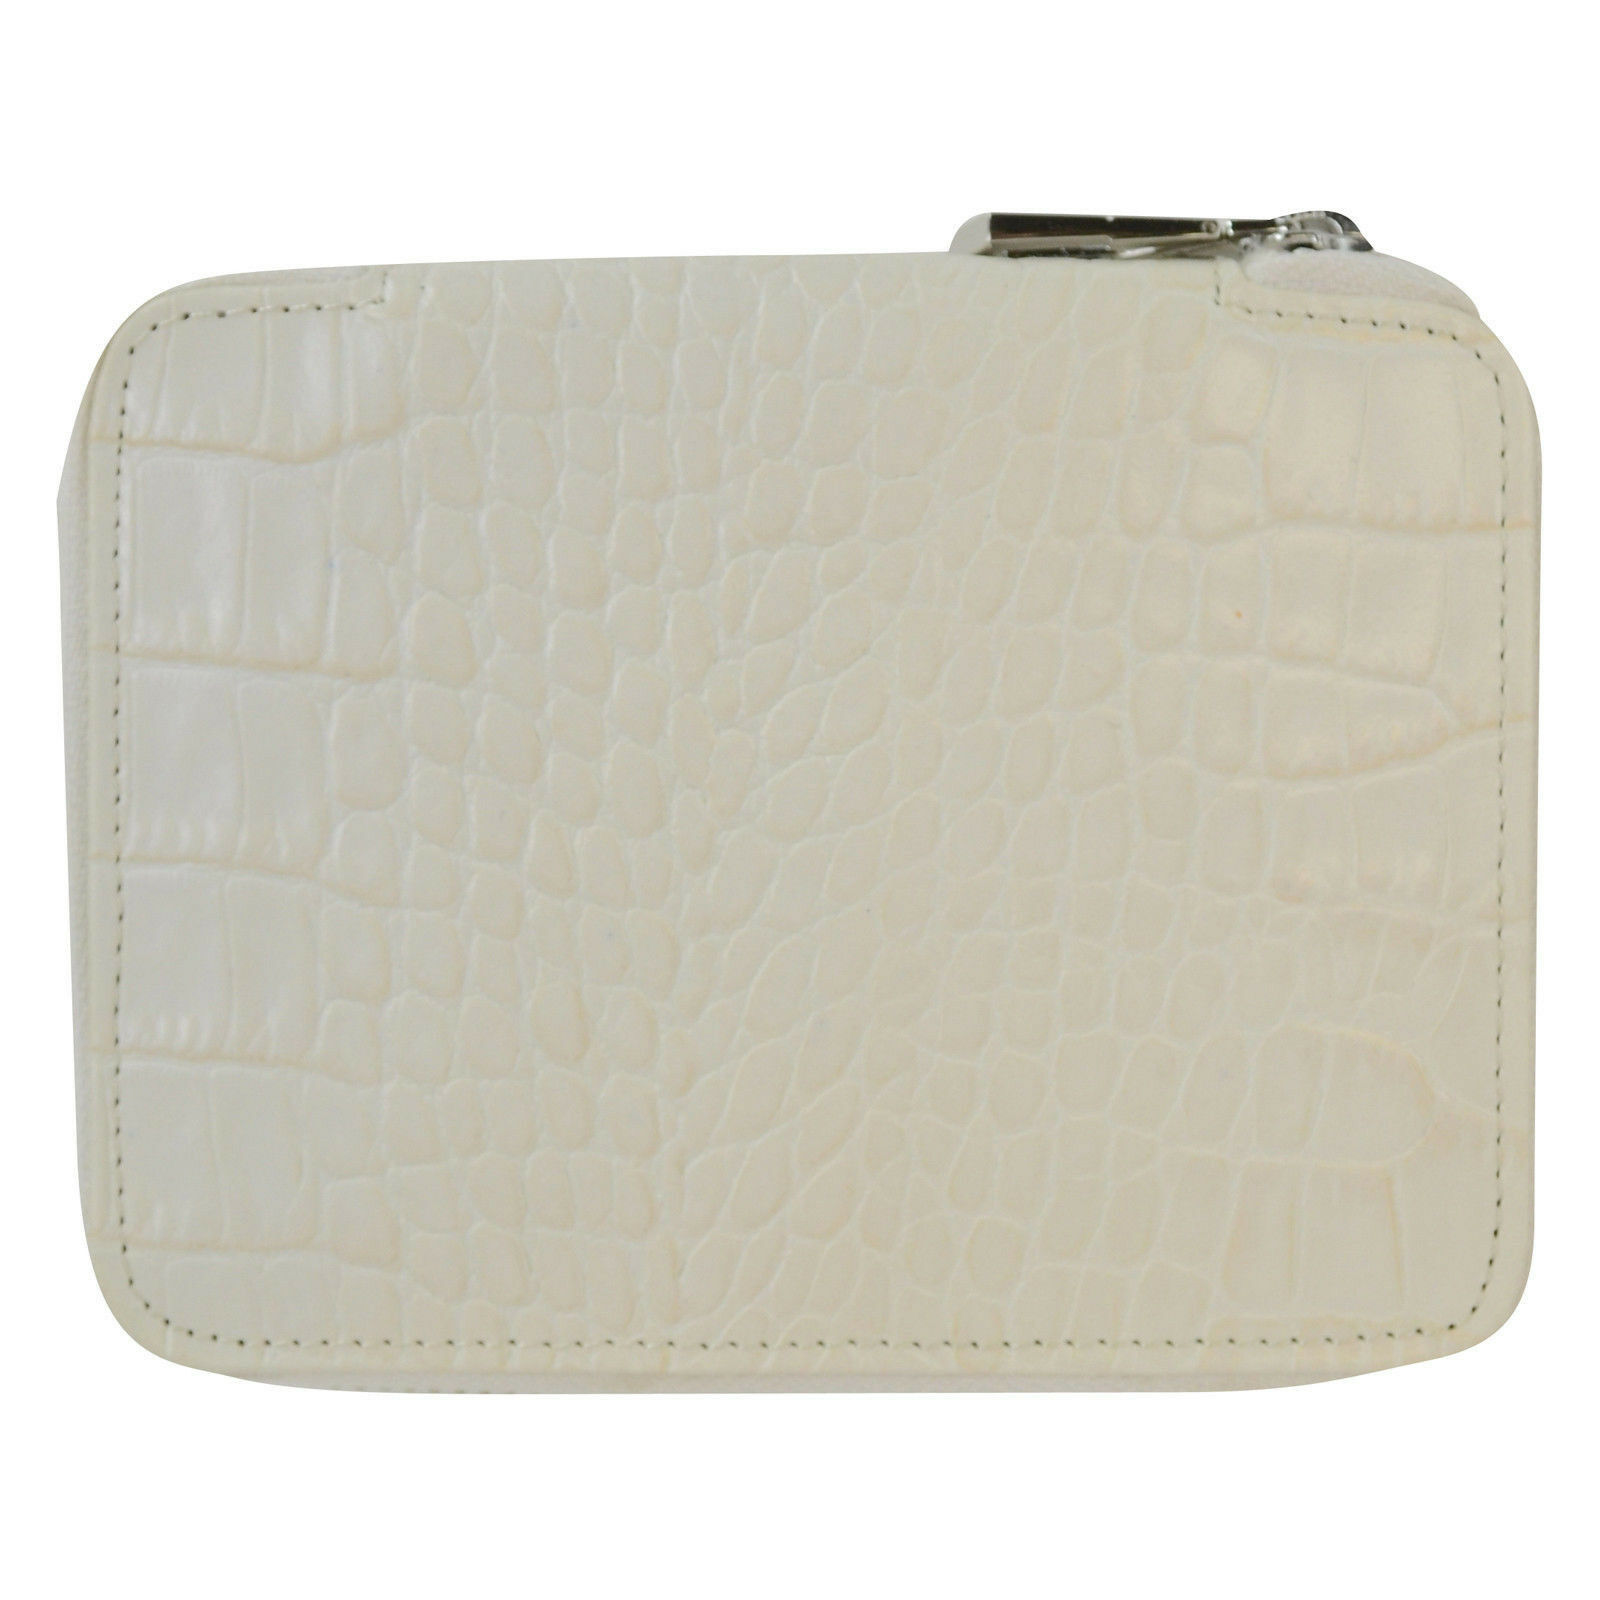 4aa39a3454 Details about NEW Marc by Marc Jacobs Croc Agenda Zip Around Wallet in White